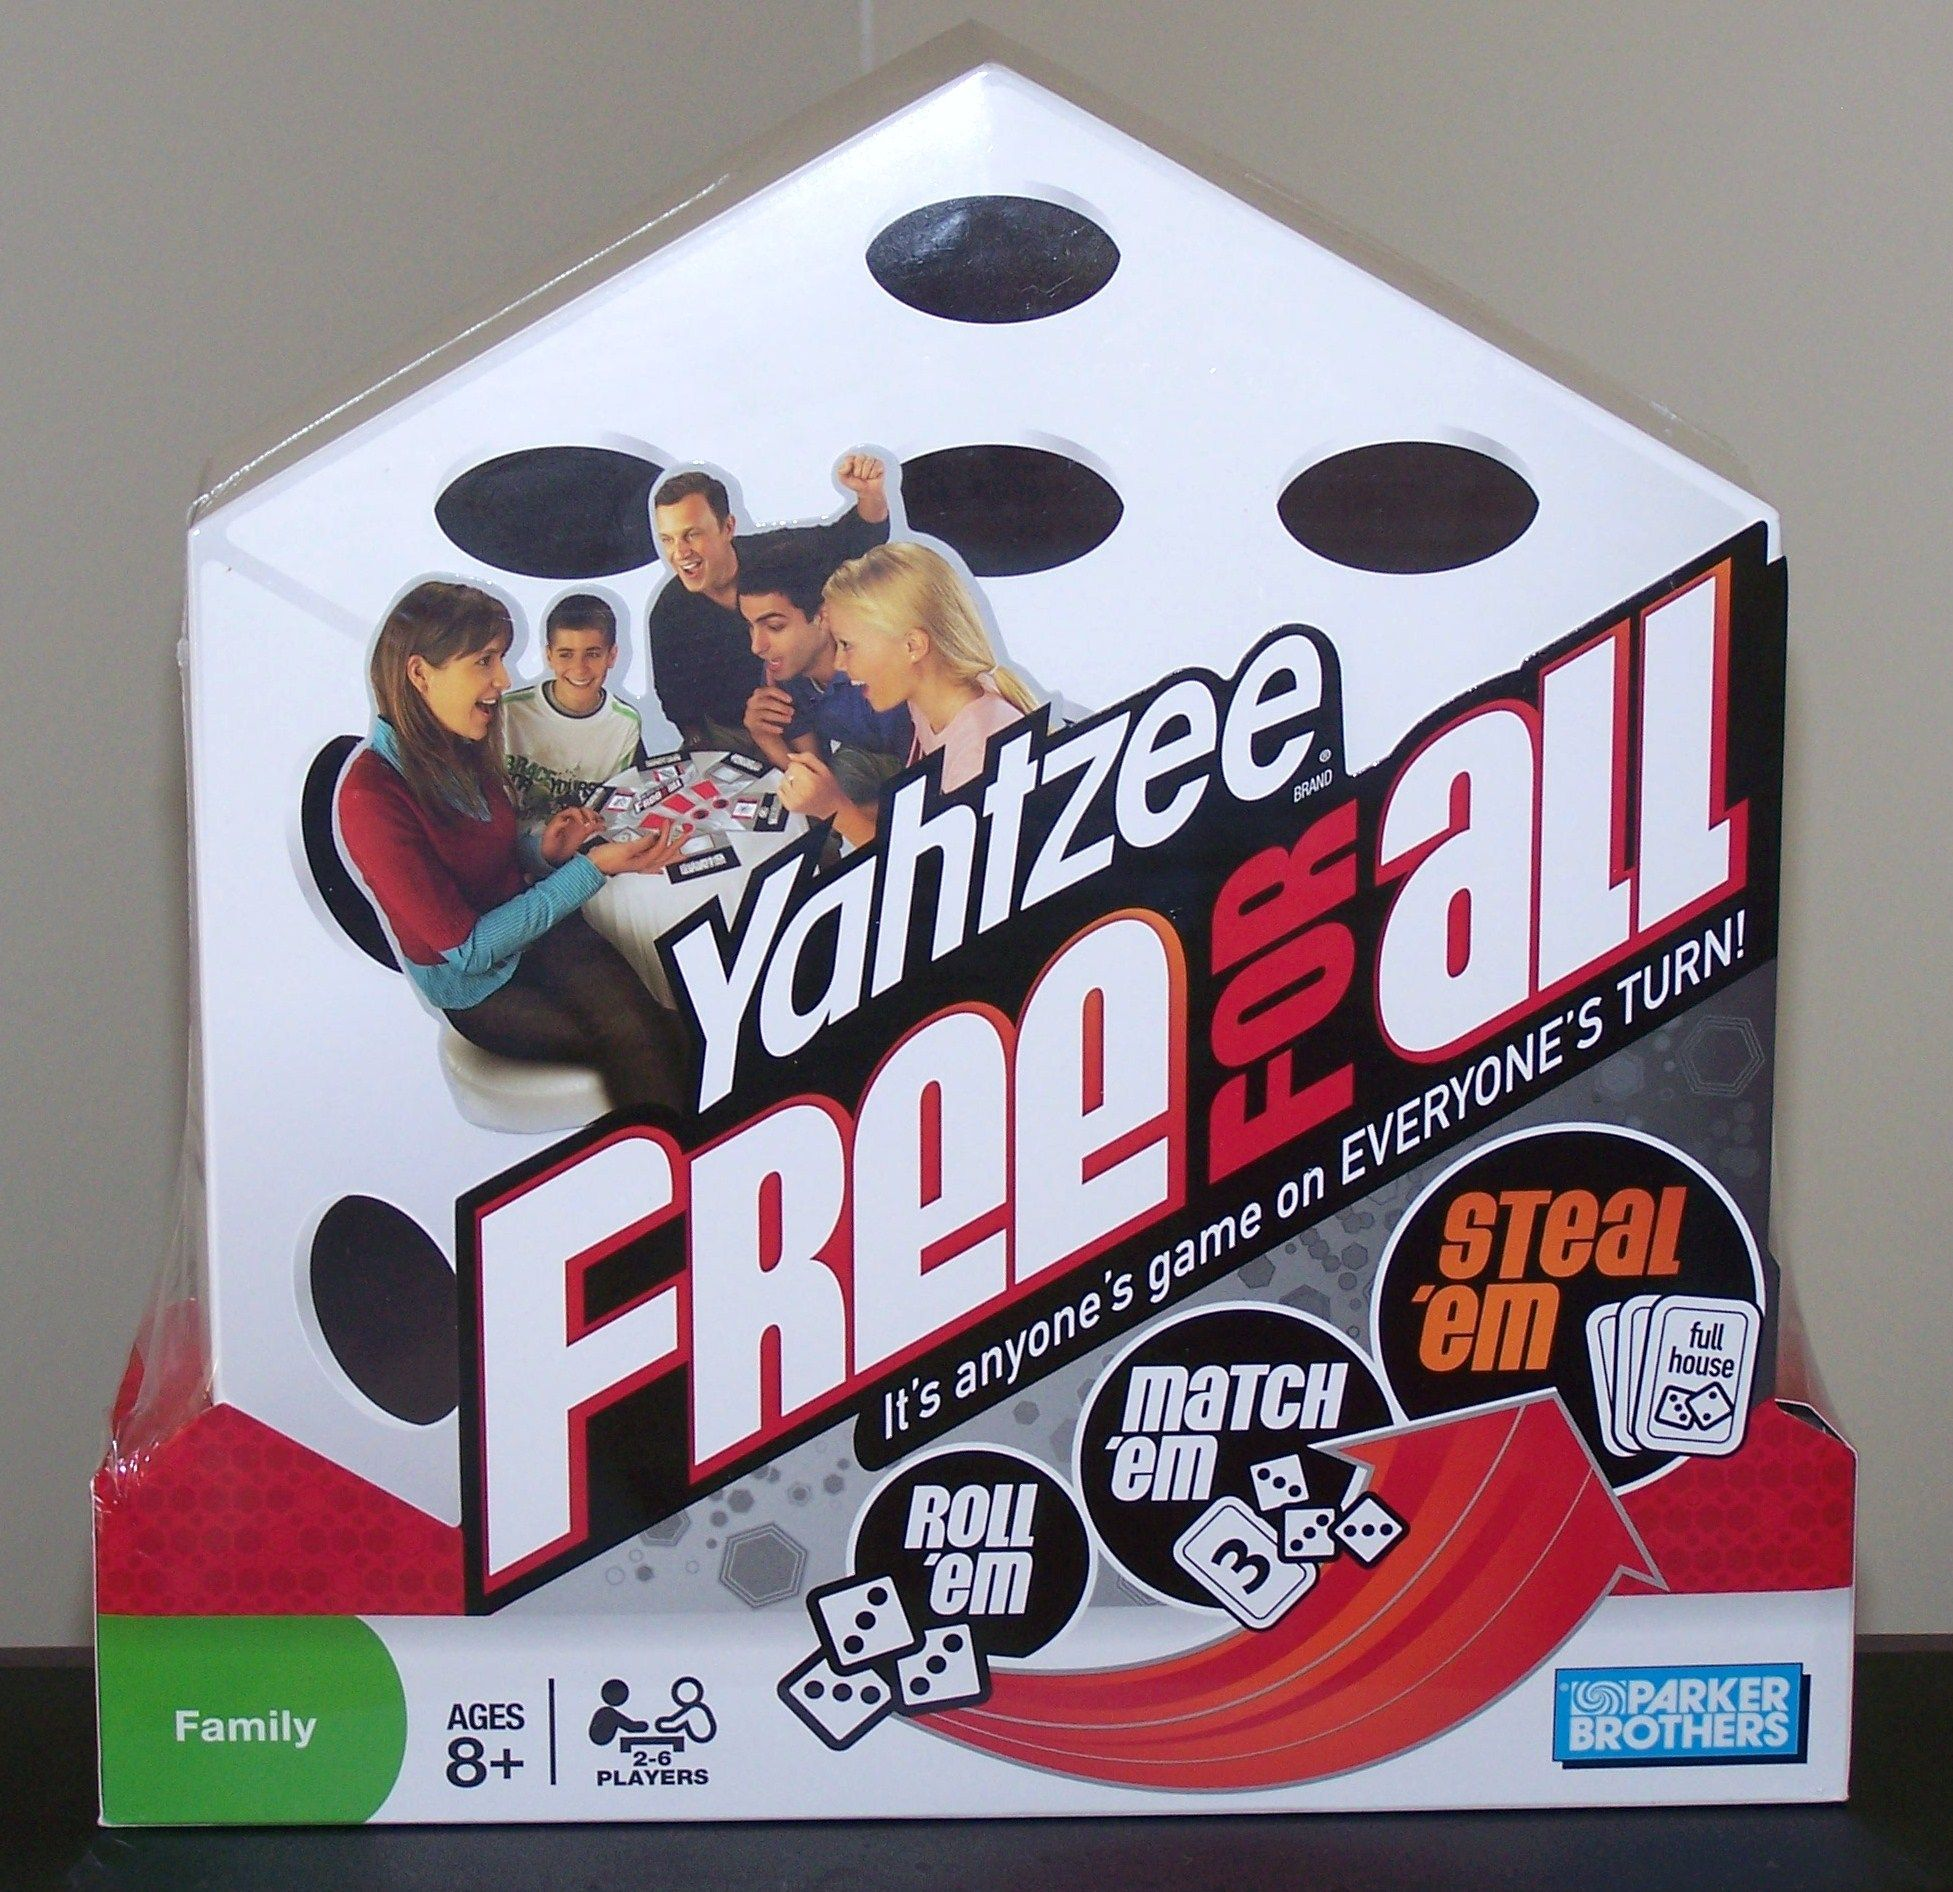 Yahtzee Free for All